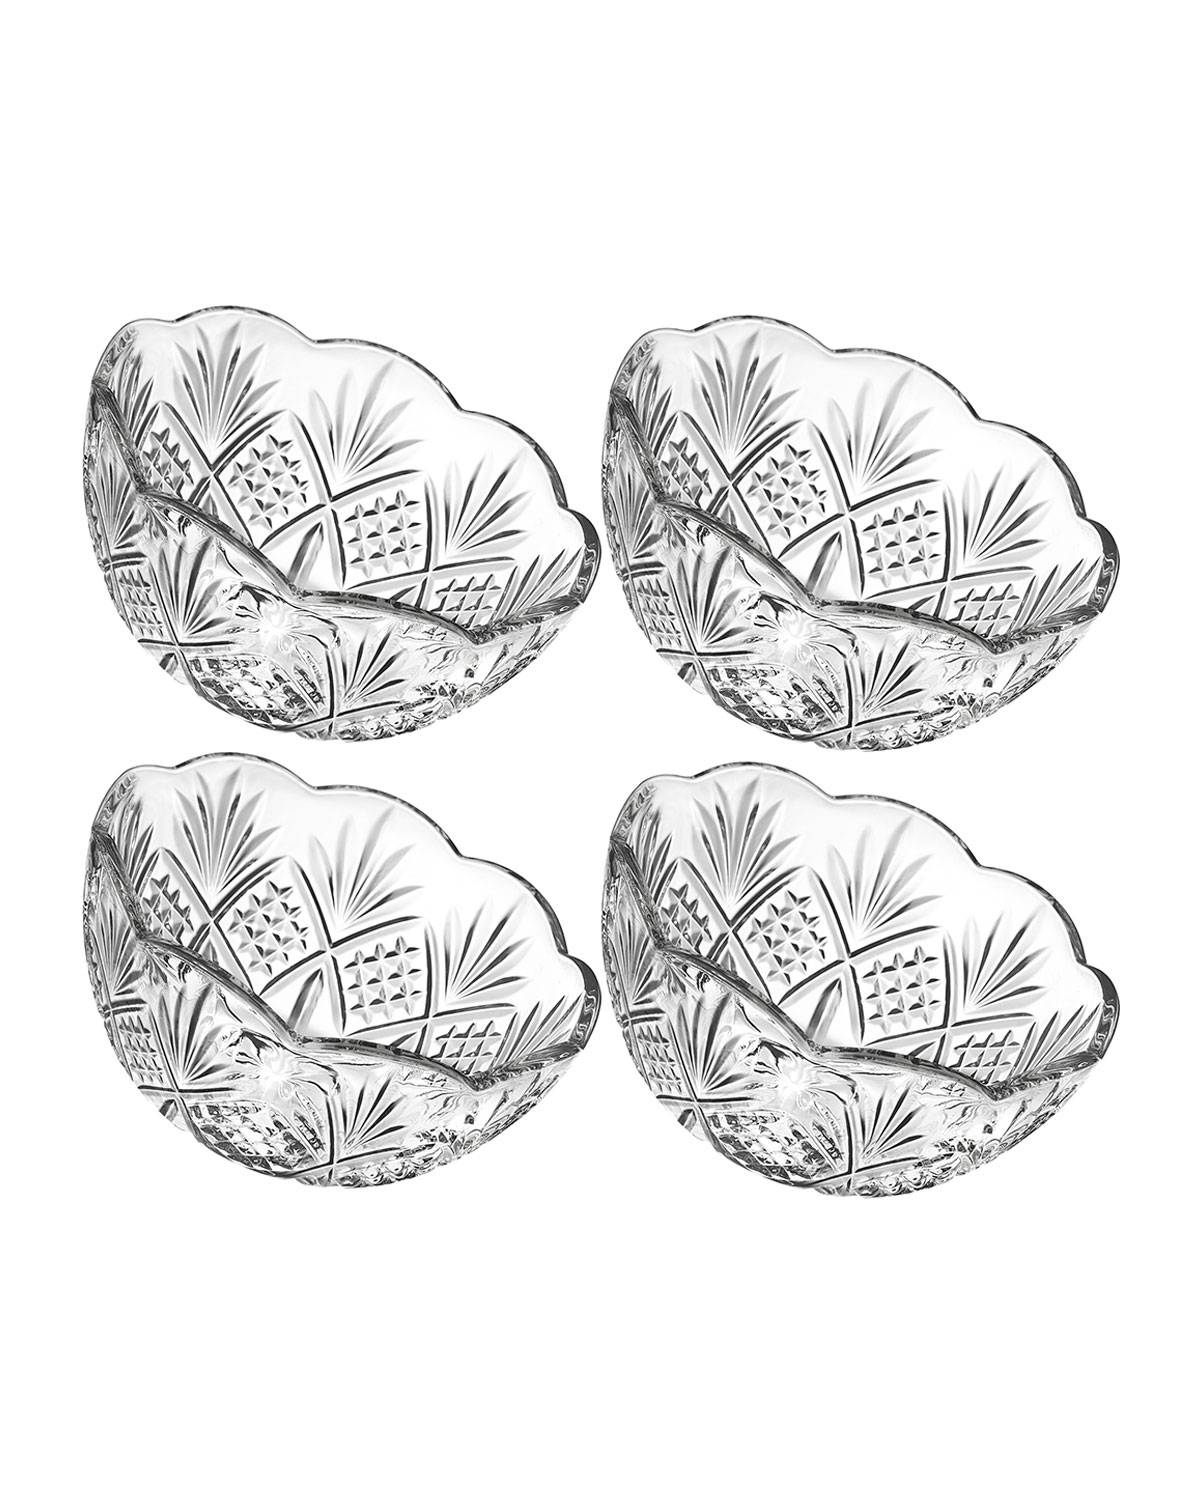 Godinger Dublin Small Candy Bowls, Set of 4